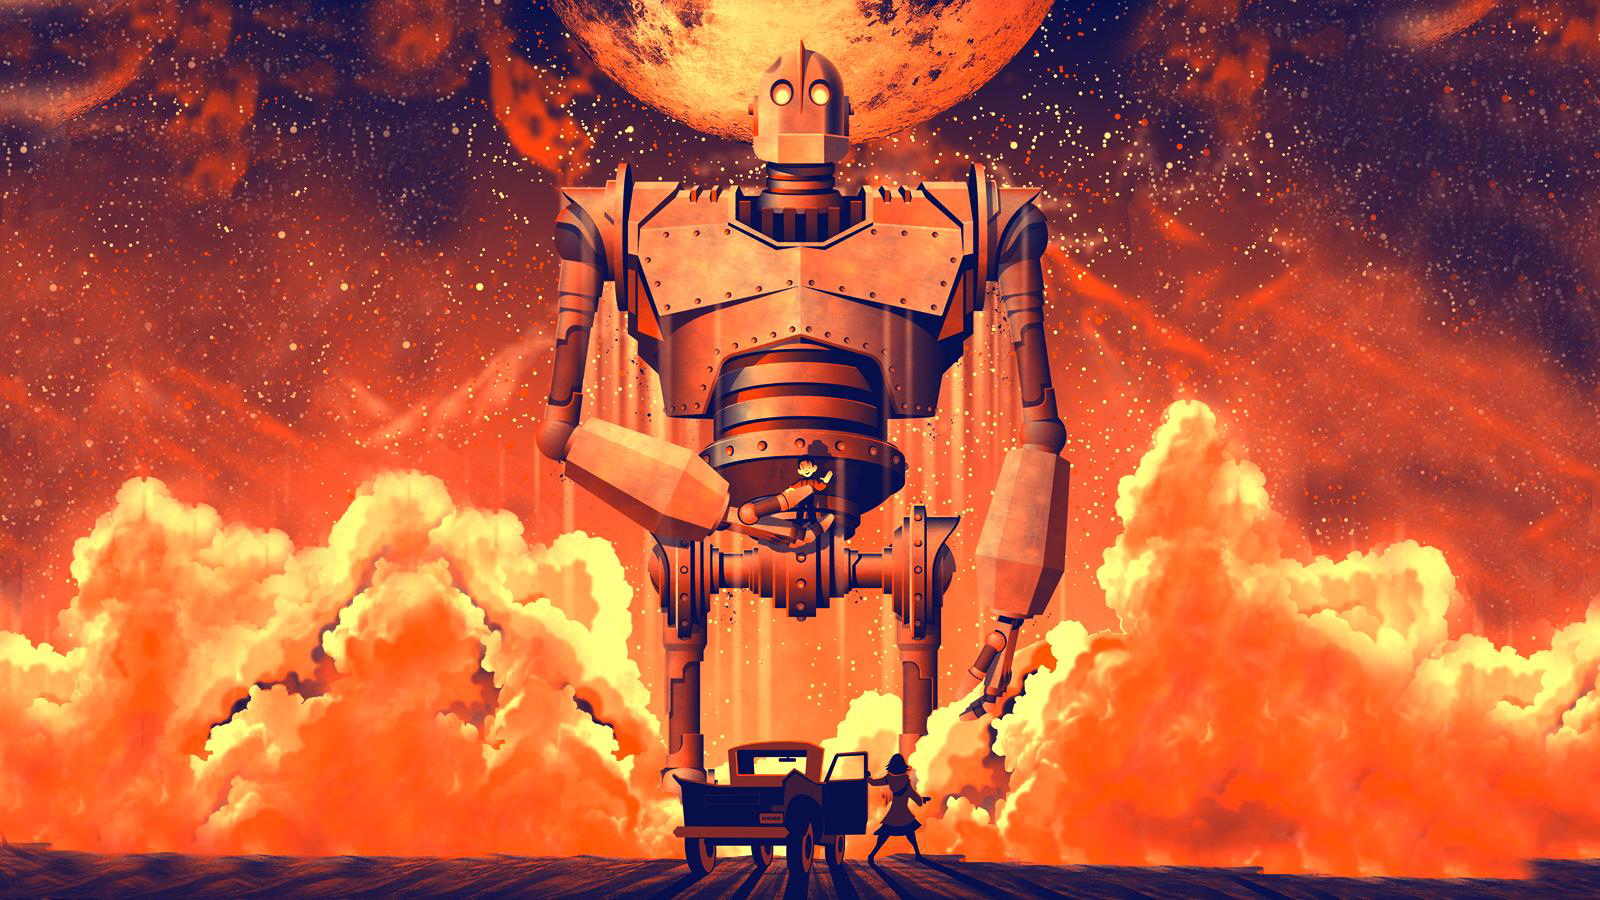 Mega Man Iphone Wallpaper The Iron Giant Wallpapers High Quality Download Free